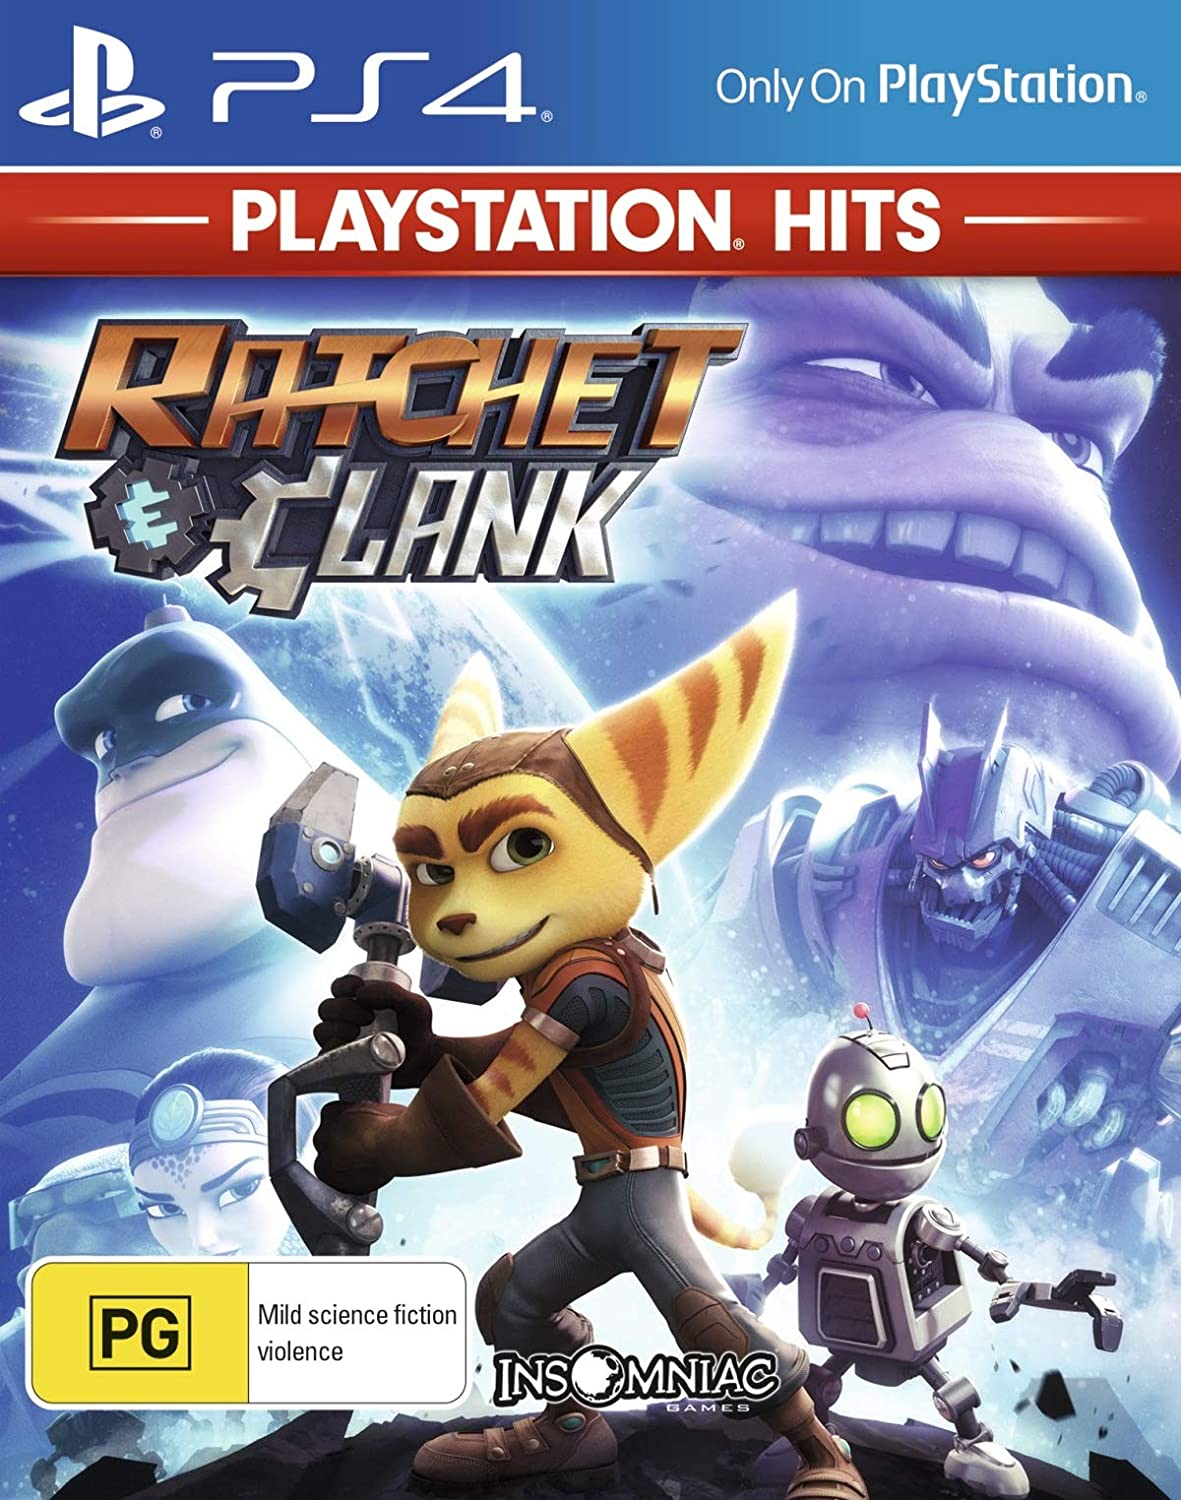 Amazon Com Ratchet Clank Playstation 4 Ps4 Video Games